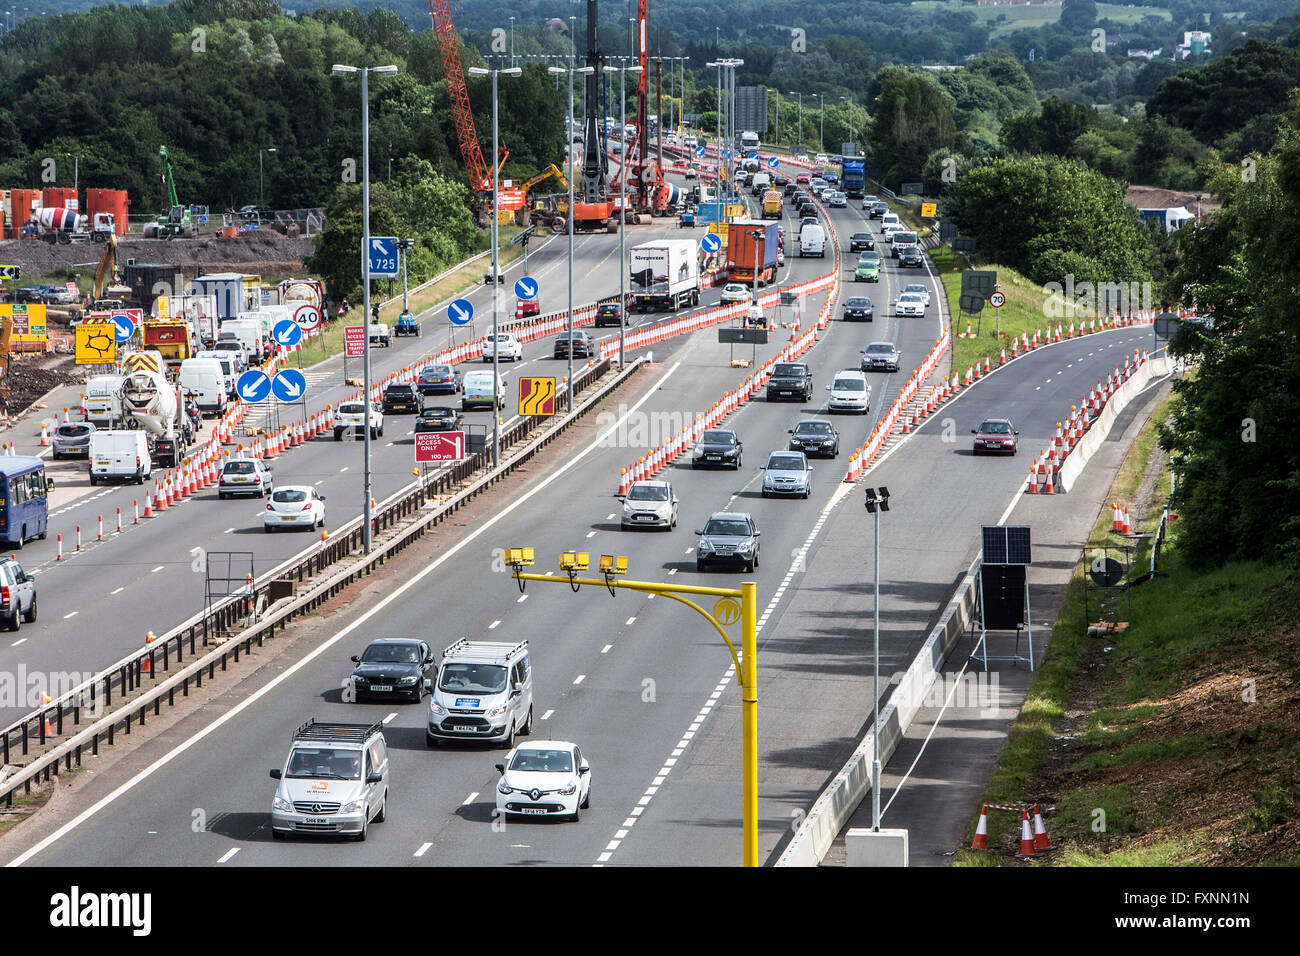 Average Speed Cameras in roadworks on M74 - Stock Image